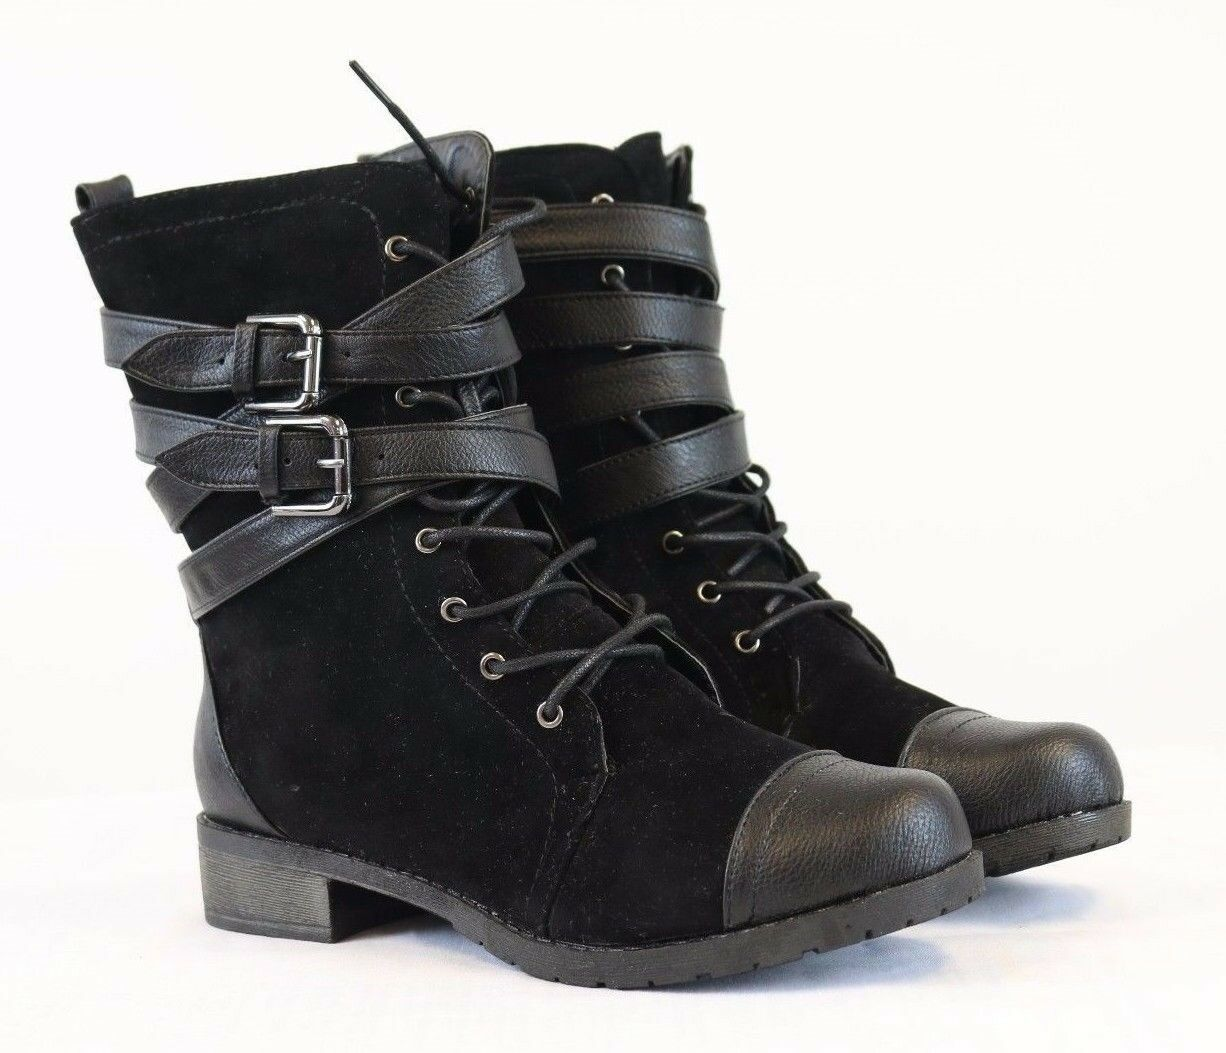 Bamboo Women's Black Combat Boots Buckle Strap Lace Up Low Heel Boots